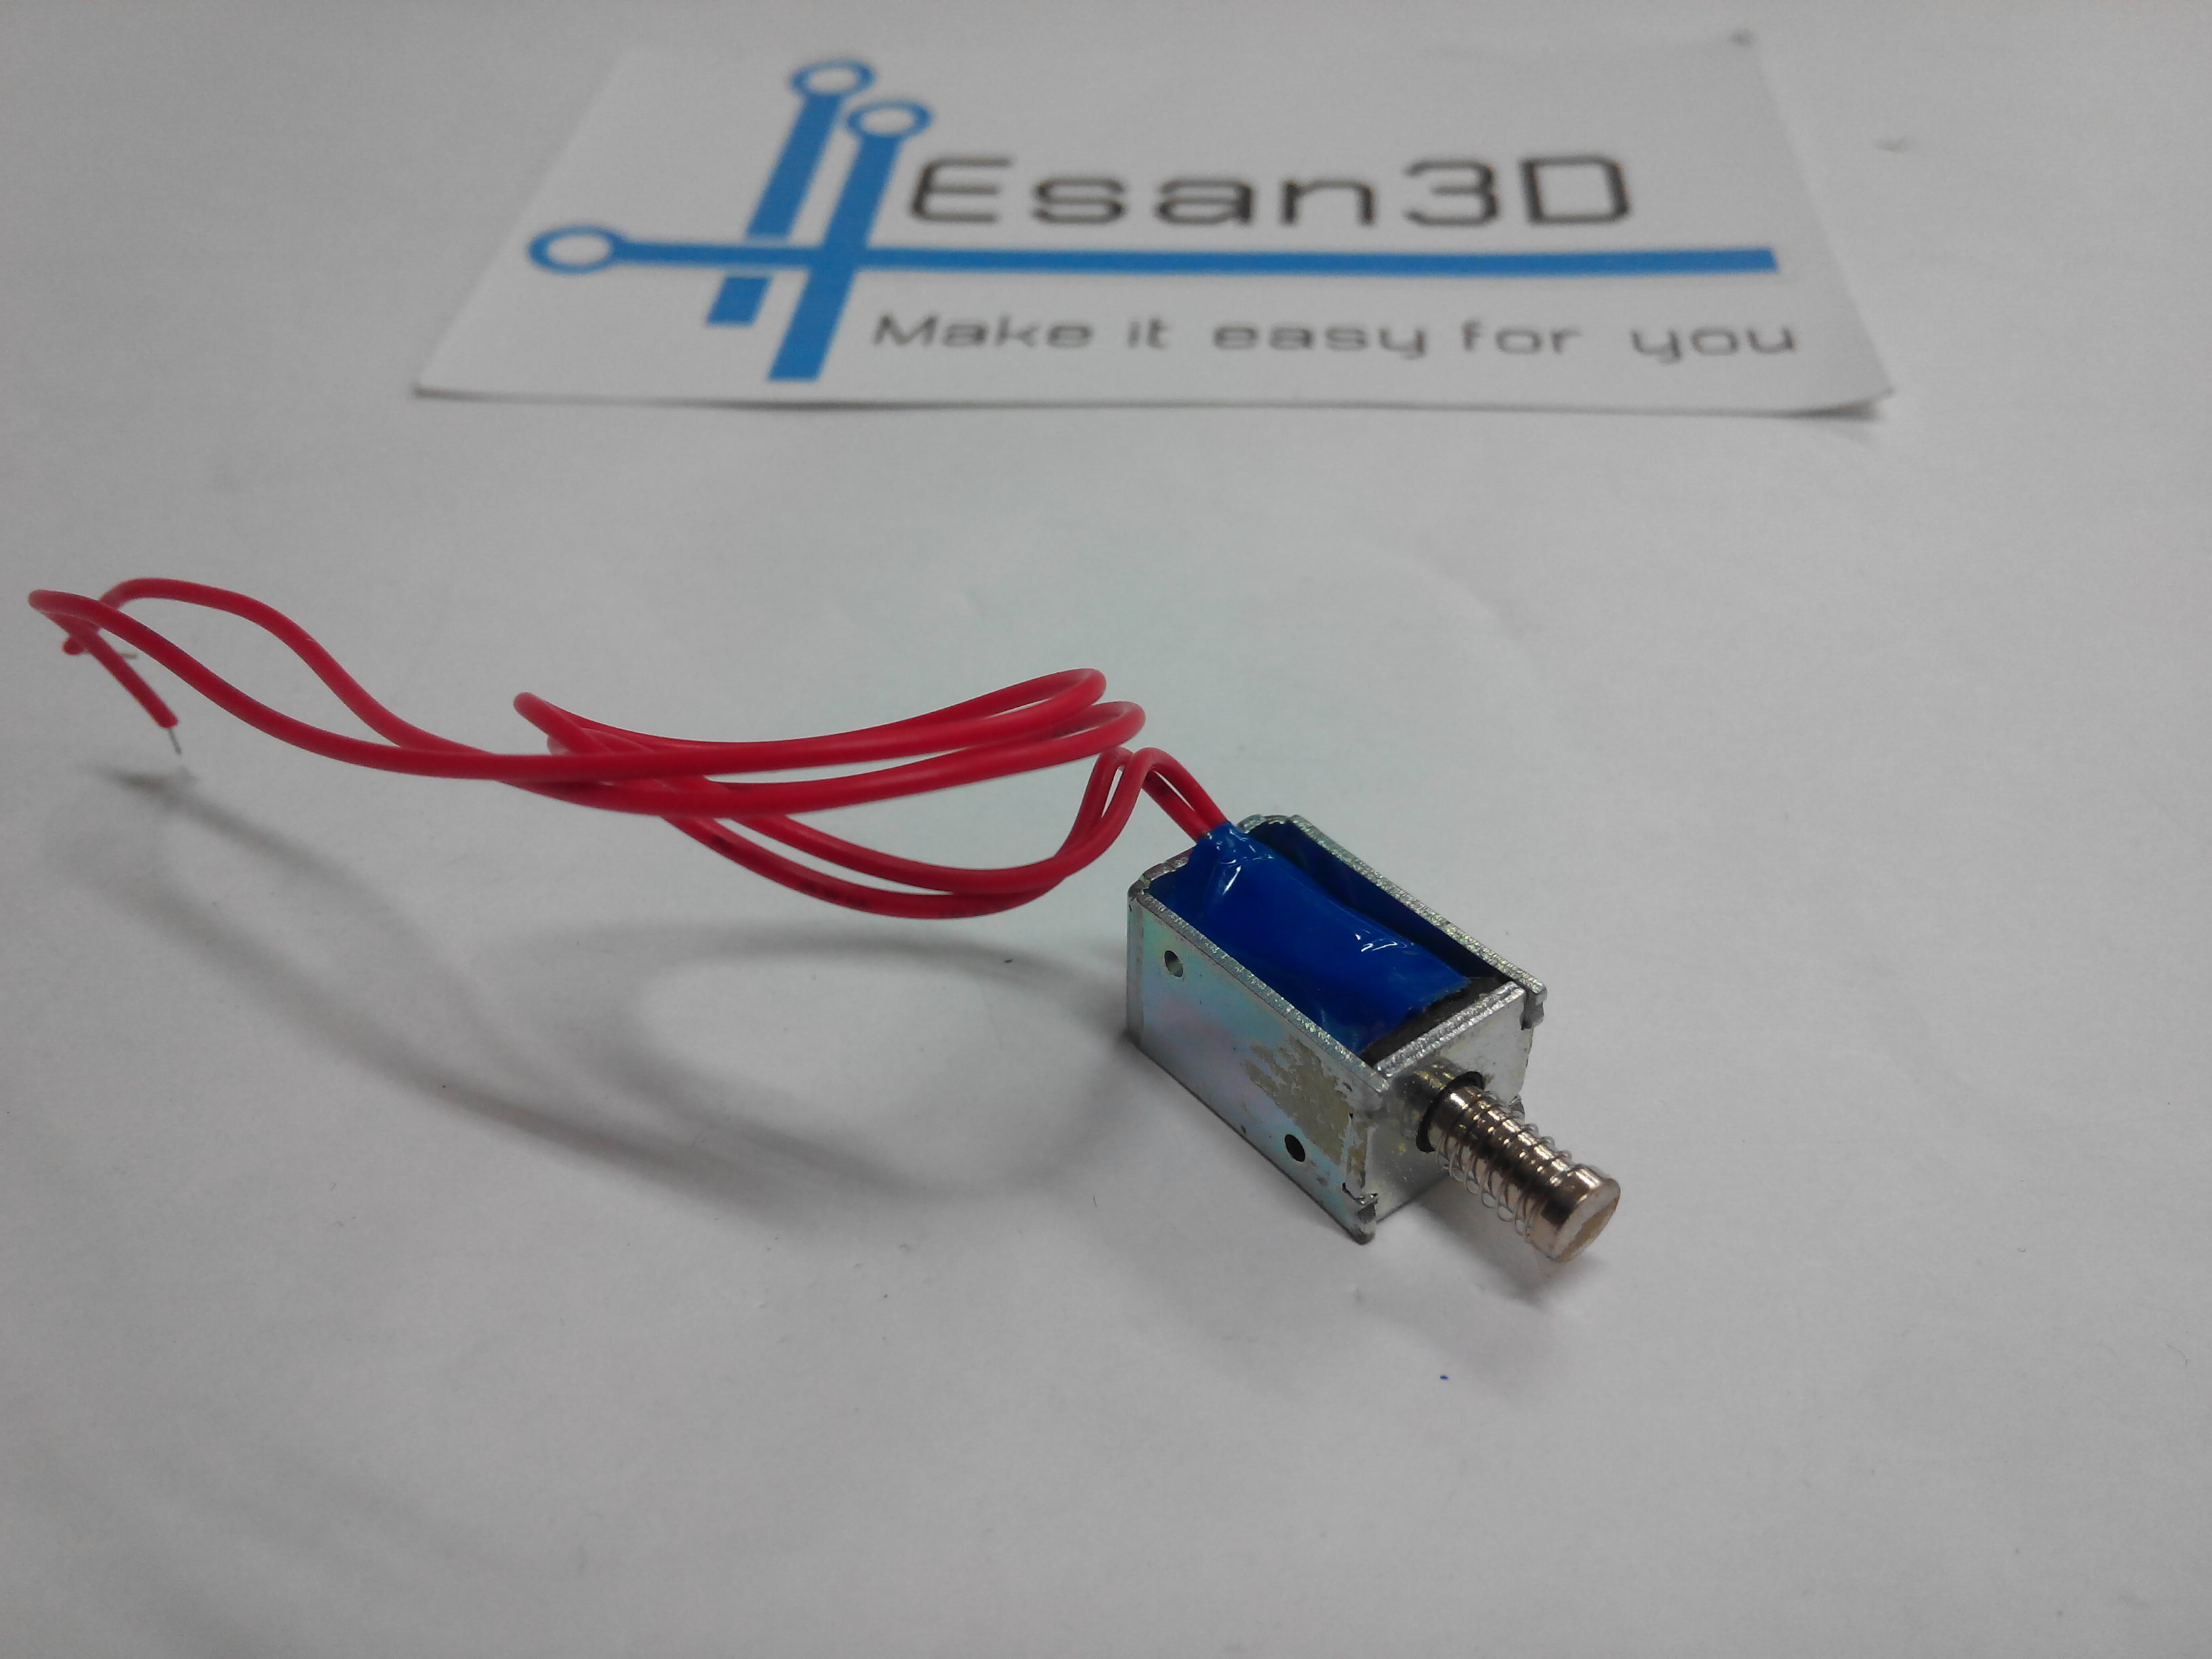 Micro solenoid electromagnet switch 3V-12V DC 80mA-350mA